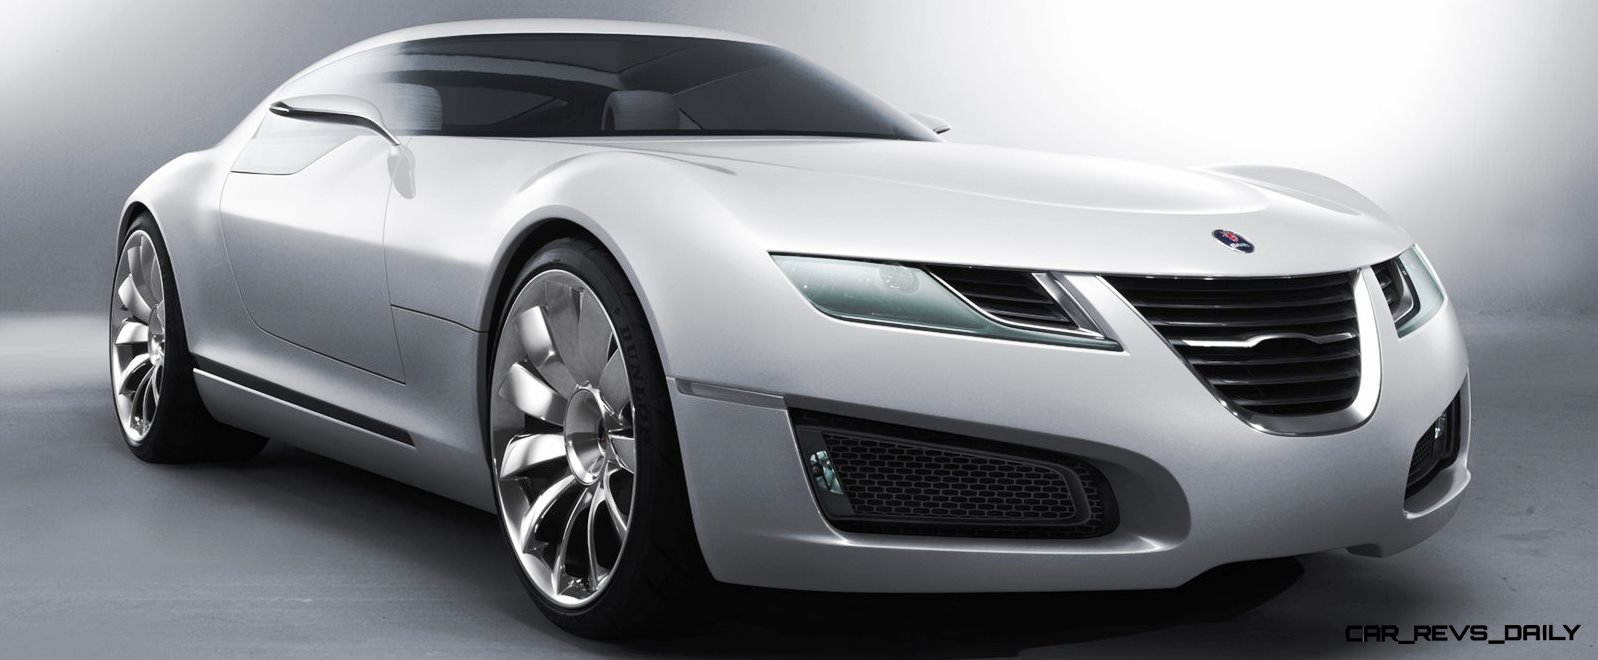 Concept to Reality -- 2006 SAAB Aero-X to 2013 SAAB 9-5 Turbo6 Aero XWD 1